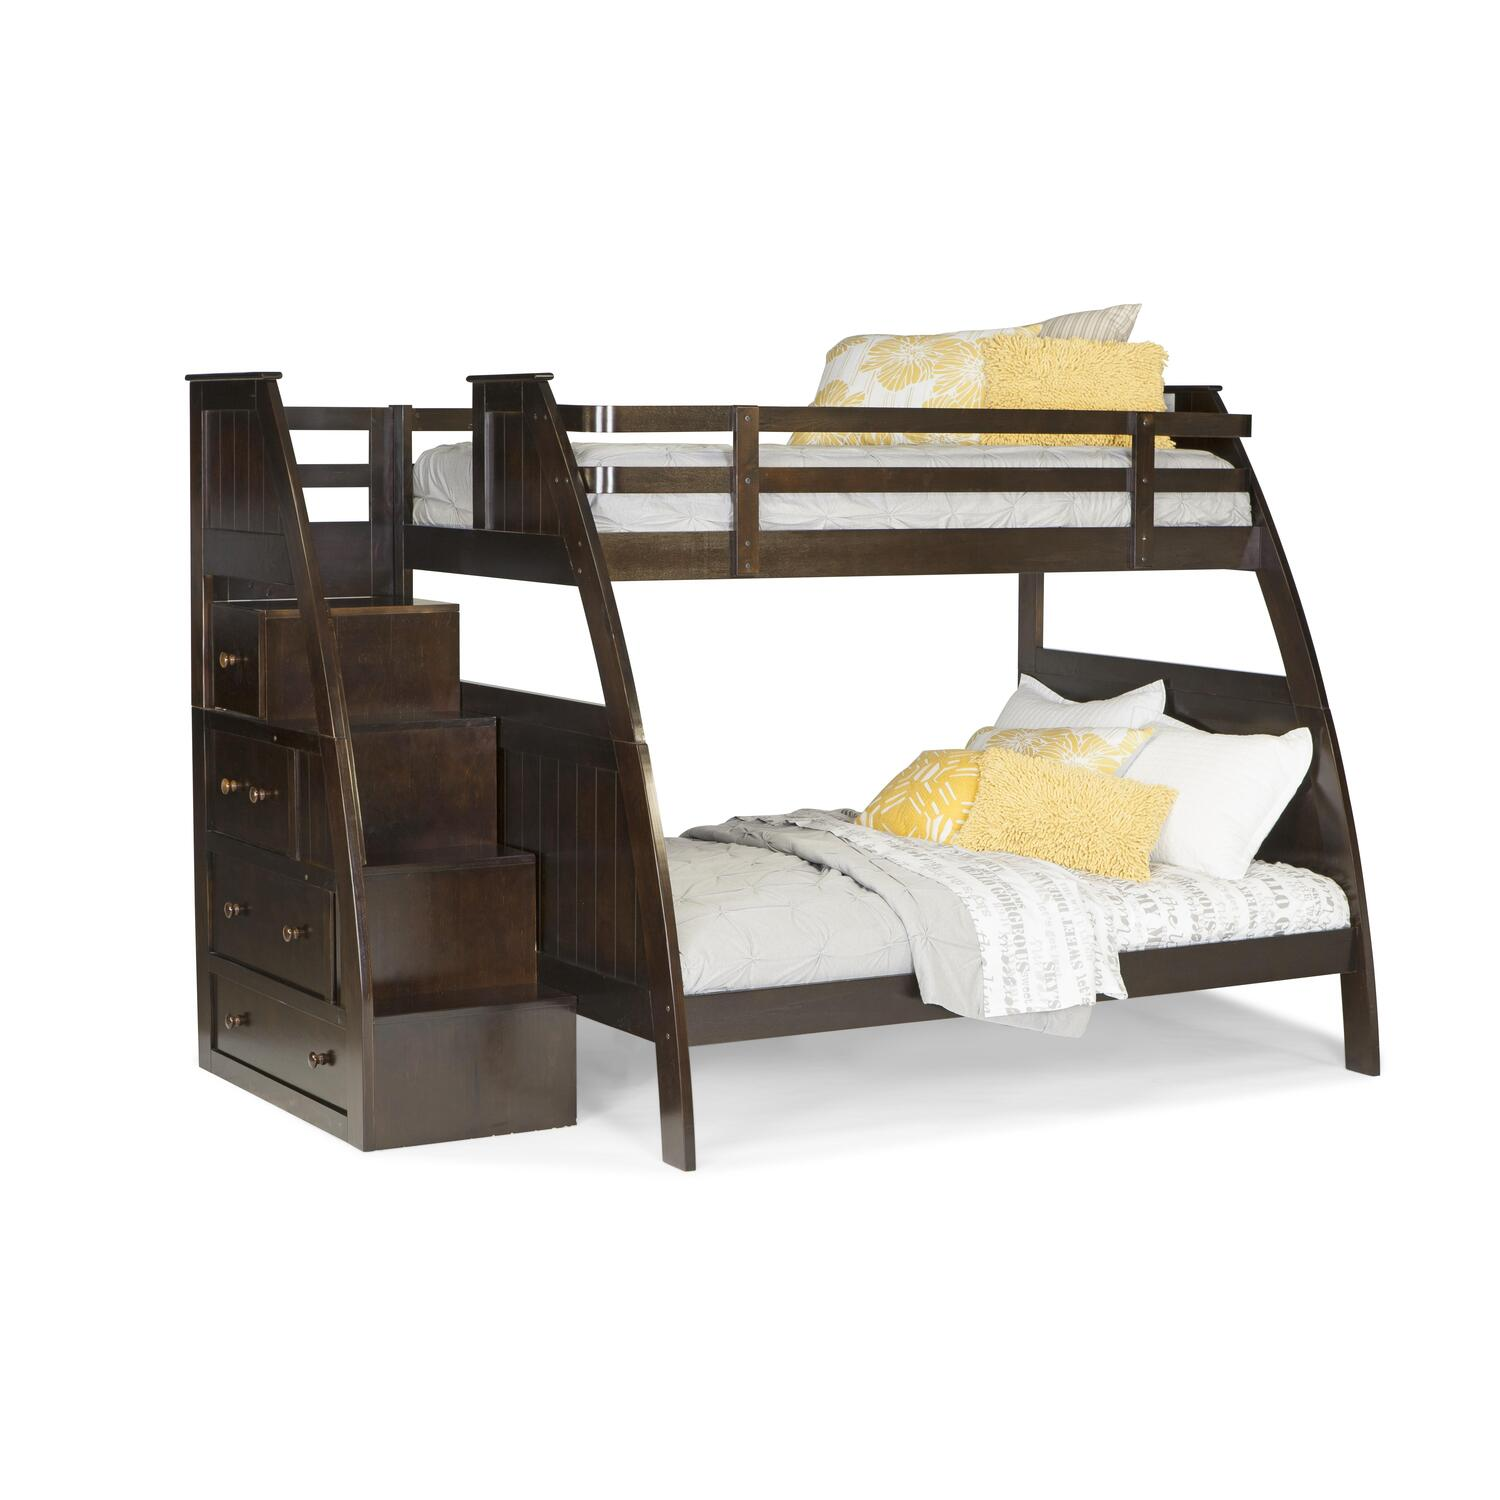 Canwood canwood overland twin over full bunk bed with built in stairs drawers by oj commerce - Loft bed with drawer stairs ...